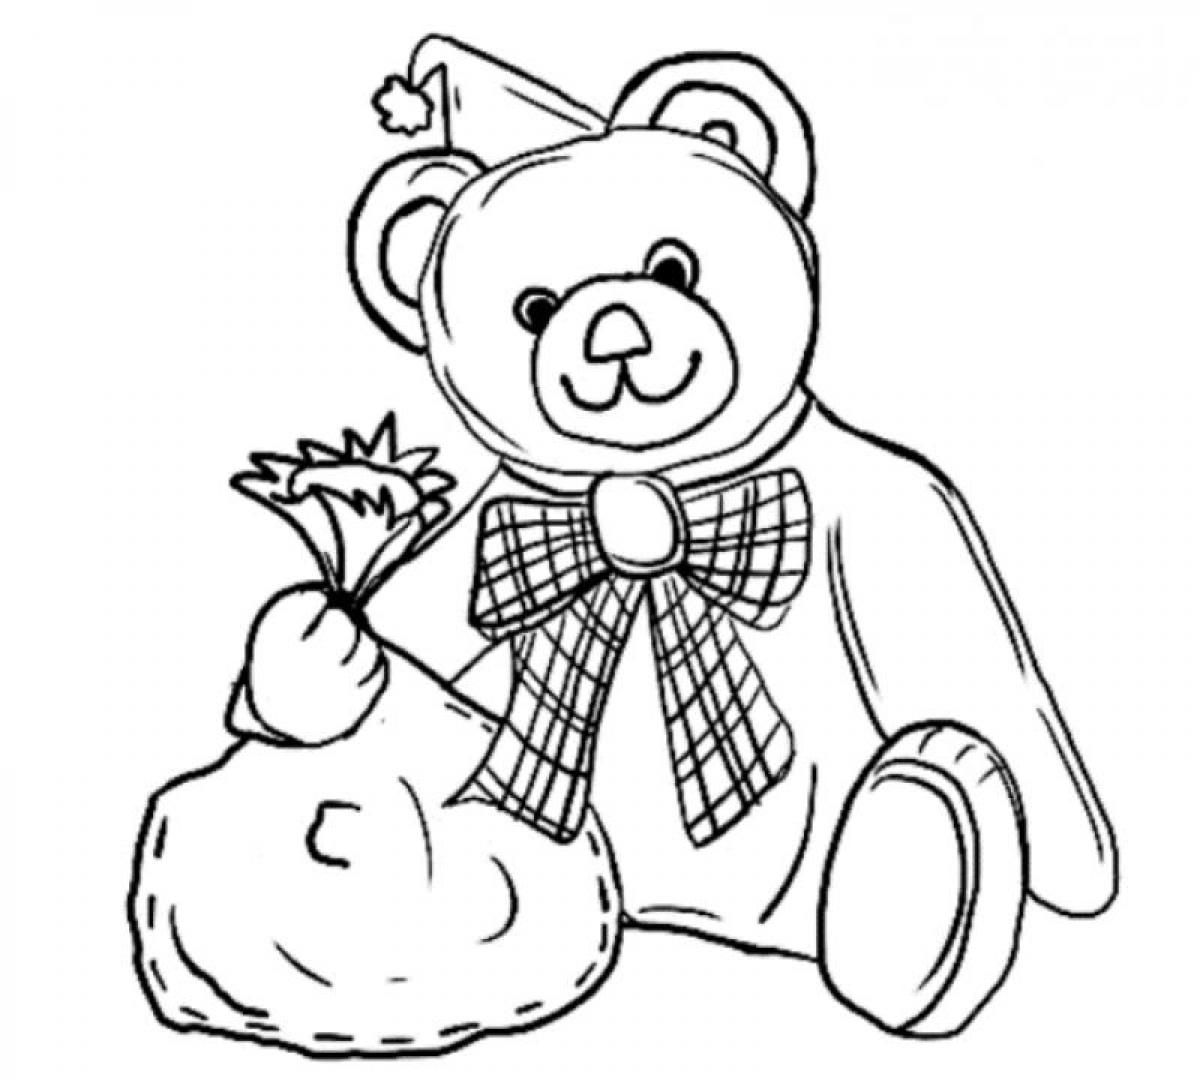 1200x1080 Free Printable Teddy Bear Coloring Pages For Kids